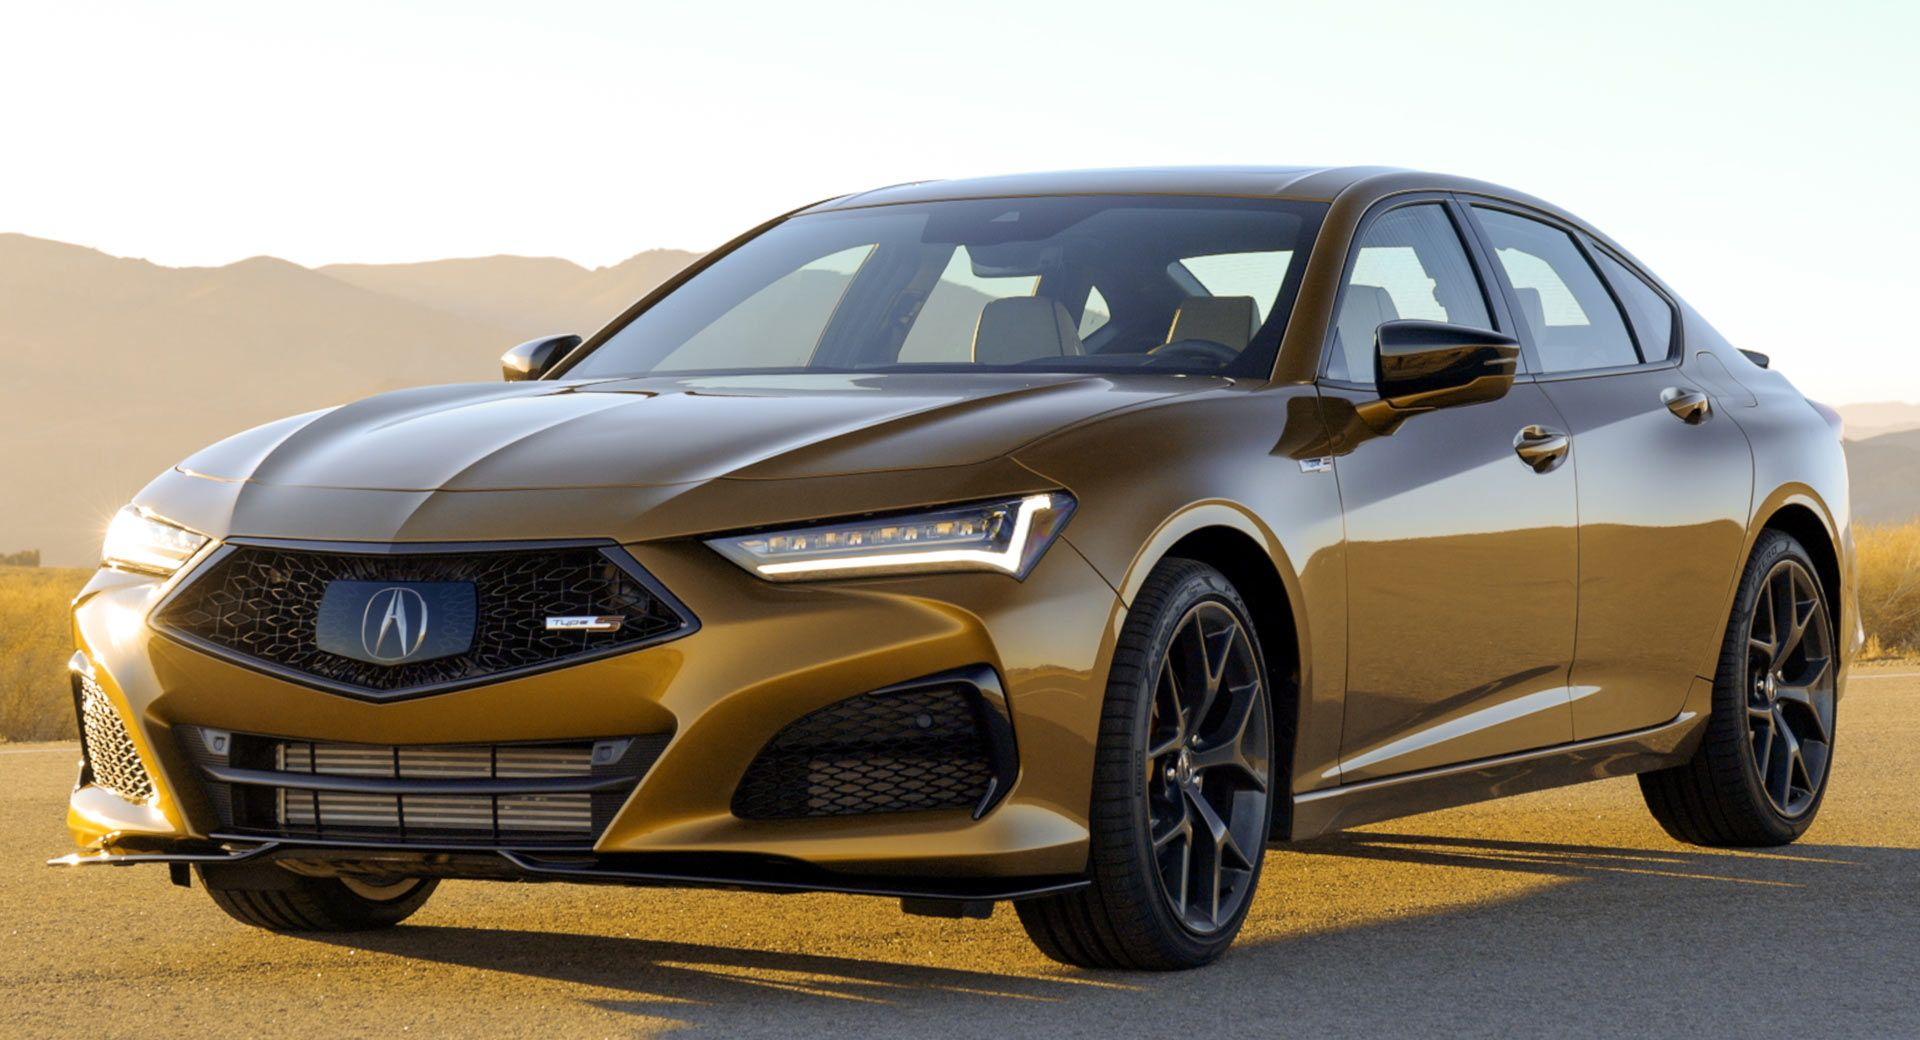 2021 Acura Tlx Type S Coming In May Will Start In The Low 50 000s Carscoops In 2021 Acura Tlx Acura New Cars